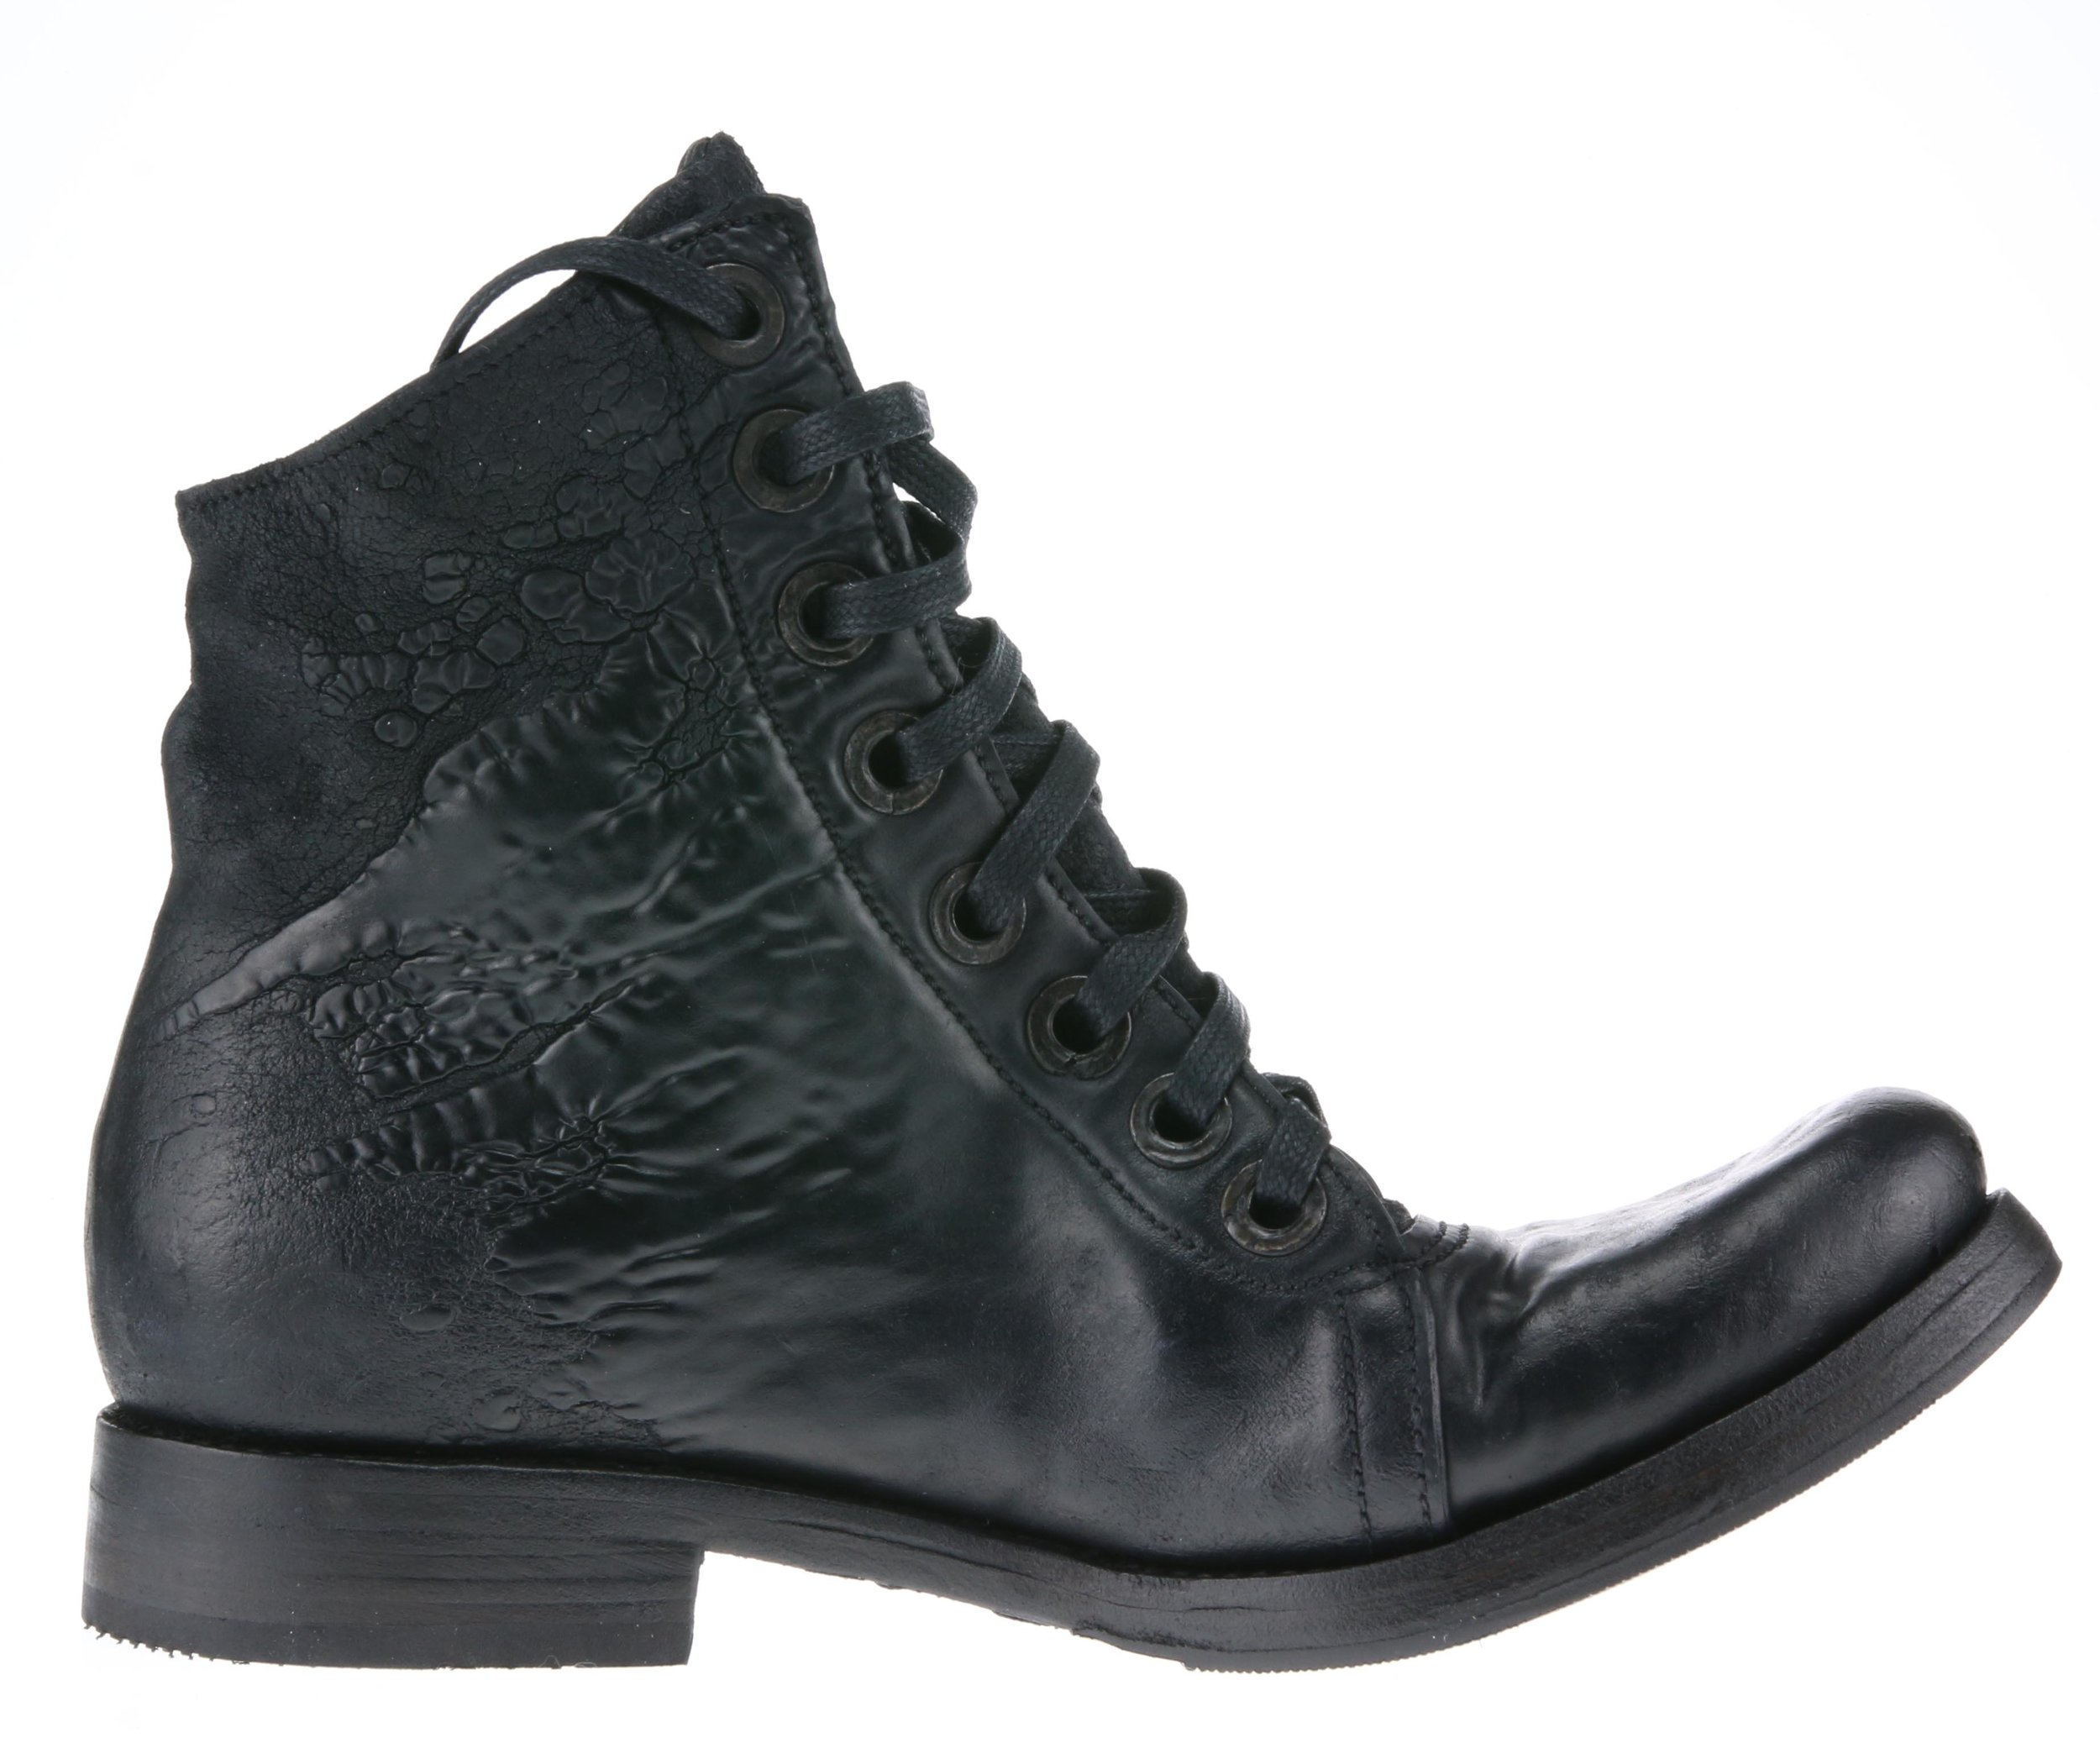 8Hole Work Boot Black Culatta